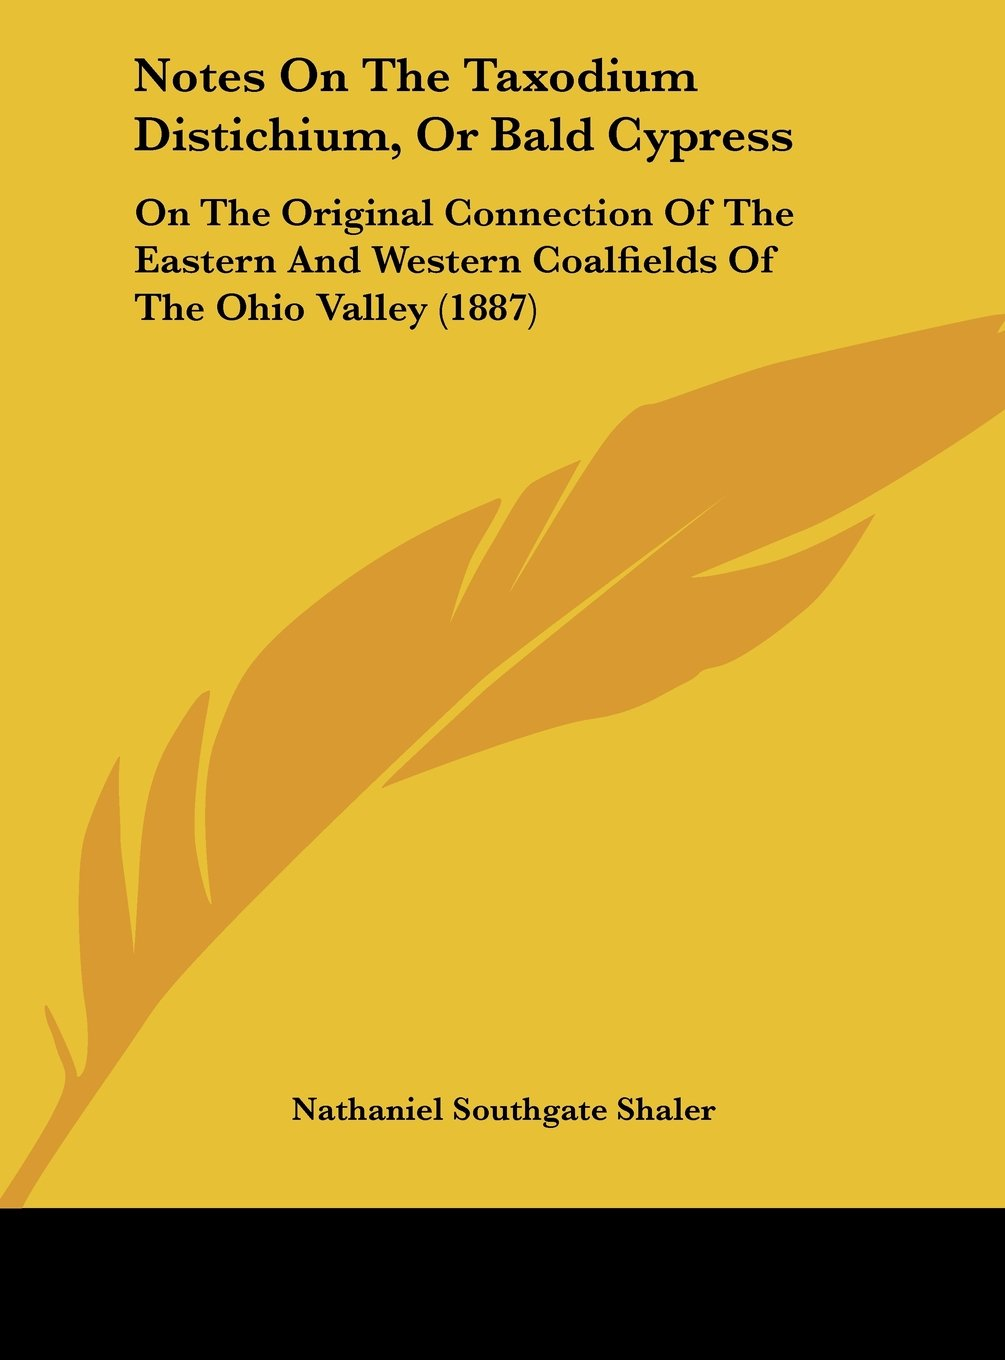 Download Notes On The Taxodium Distichium, Or Bald Cypress: On The Original Connection Of The Eastern And Western Coalfields Of The Ohio Valley (1887) ebook